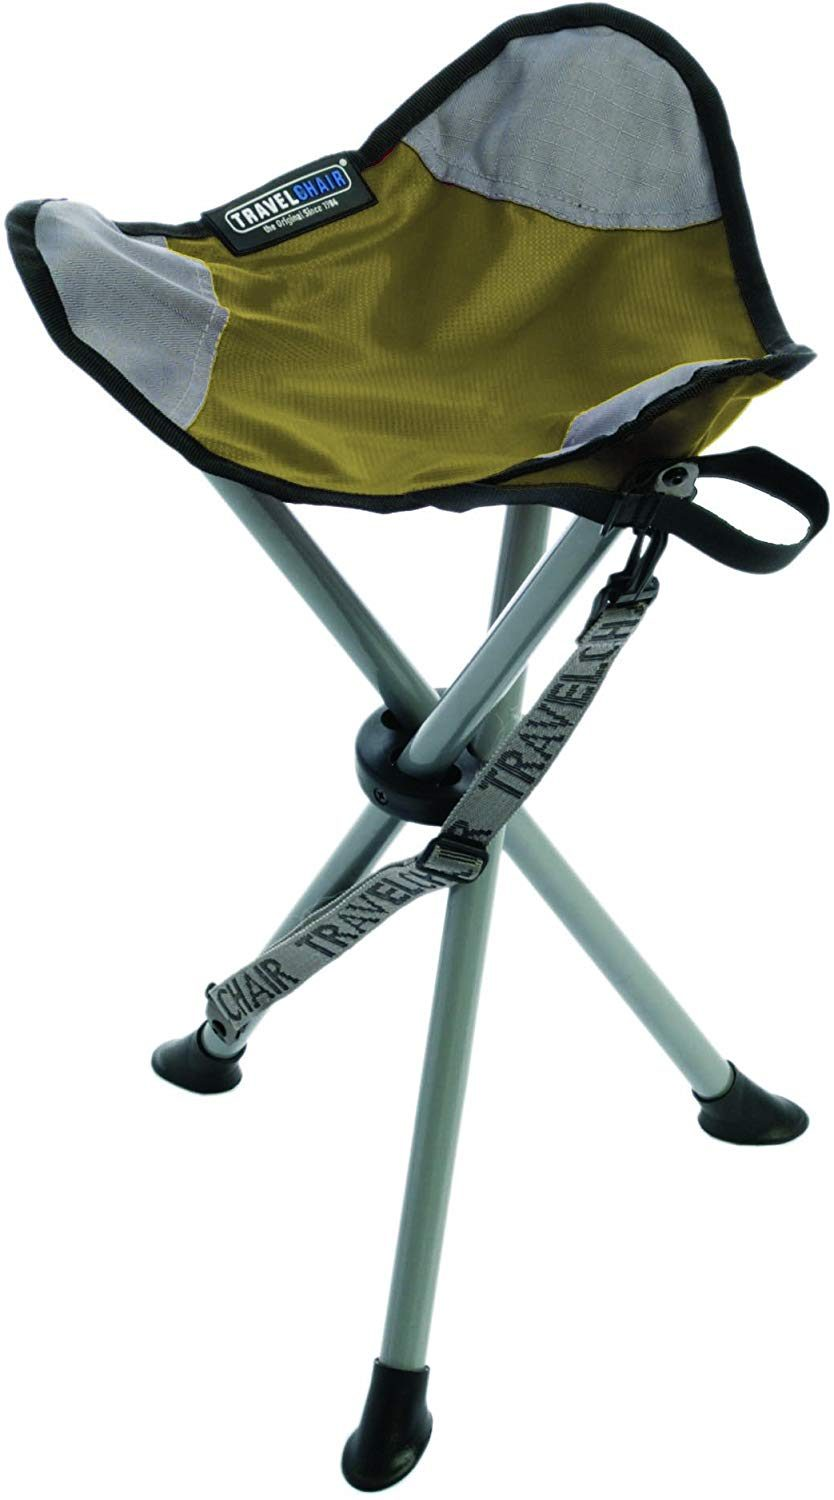 Phenomenal Best Portable Seats And Stools In 2019 Buying Guide And Reviews Pdpeps Interior Chair Design Pdpepsorg